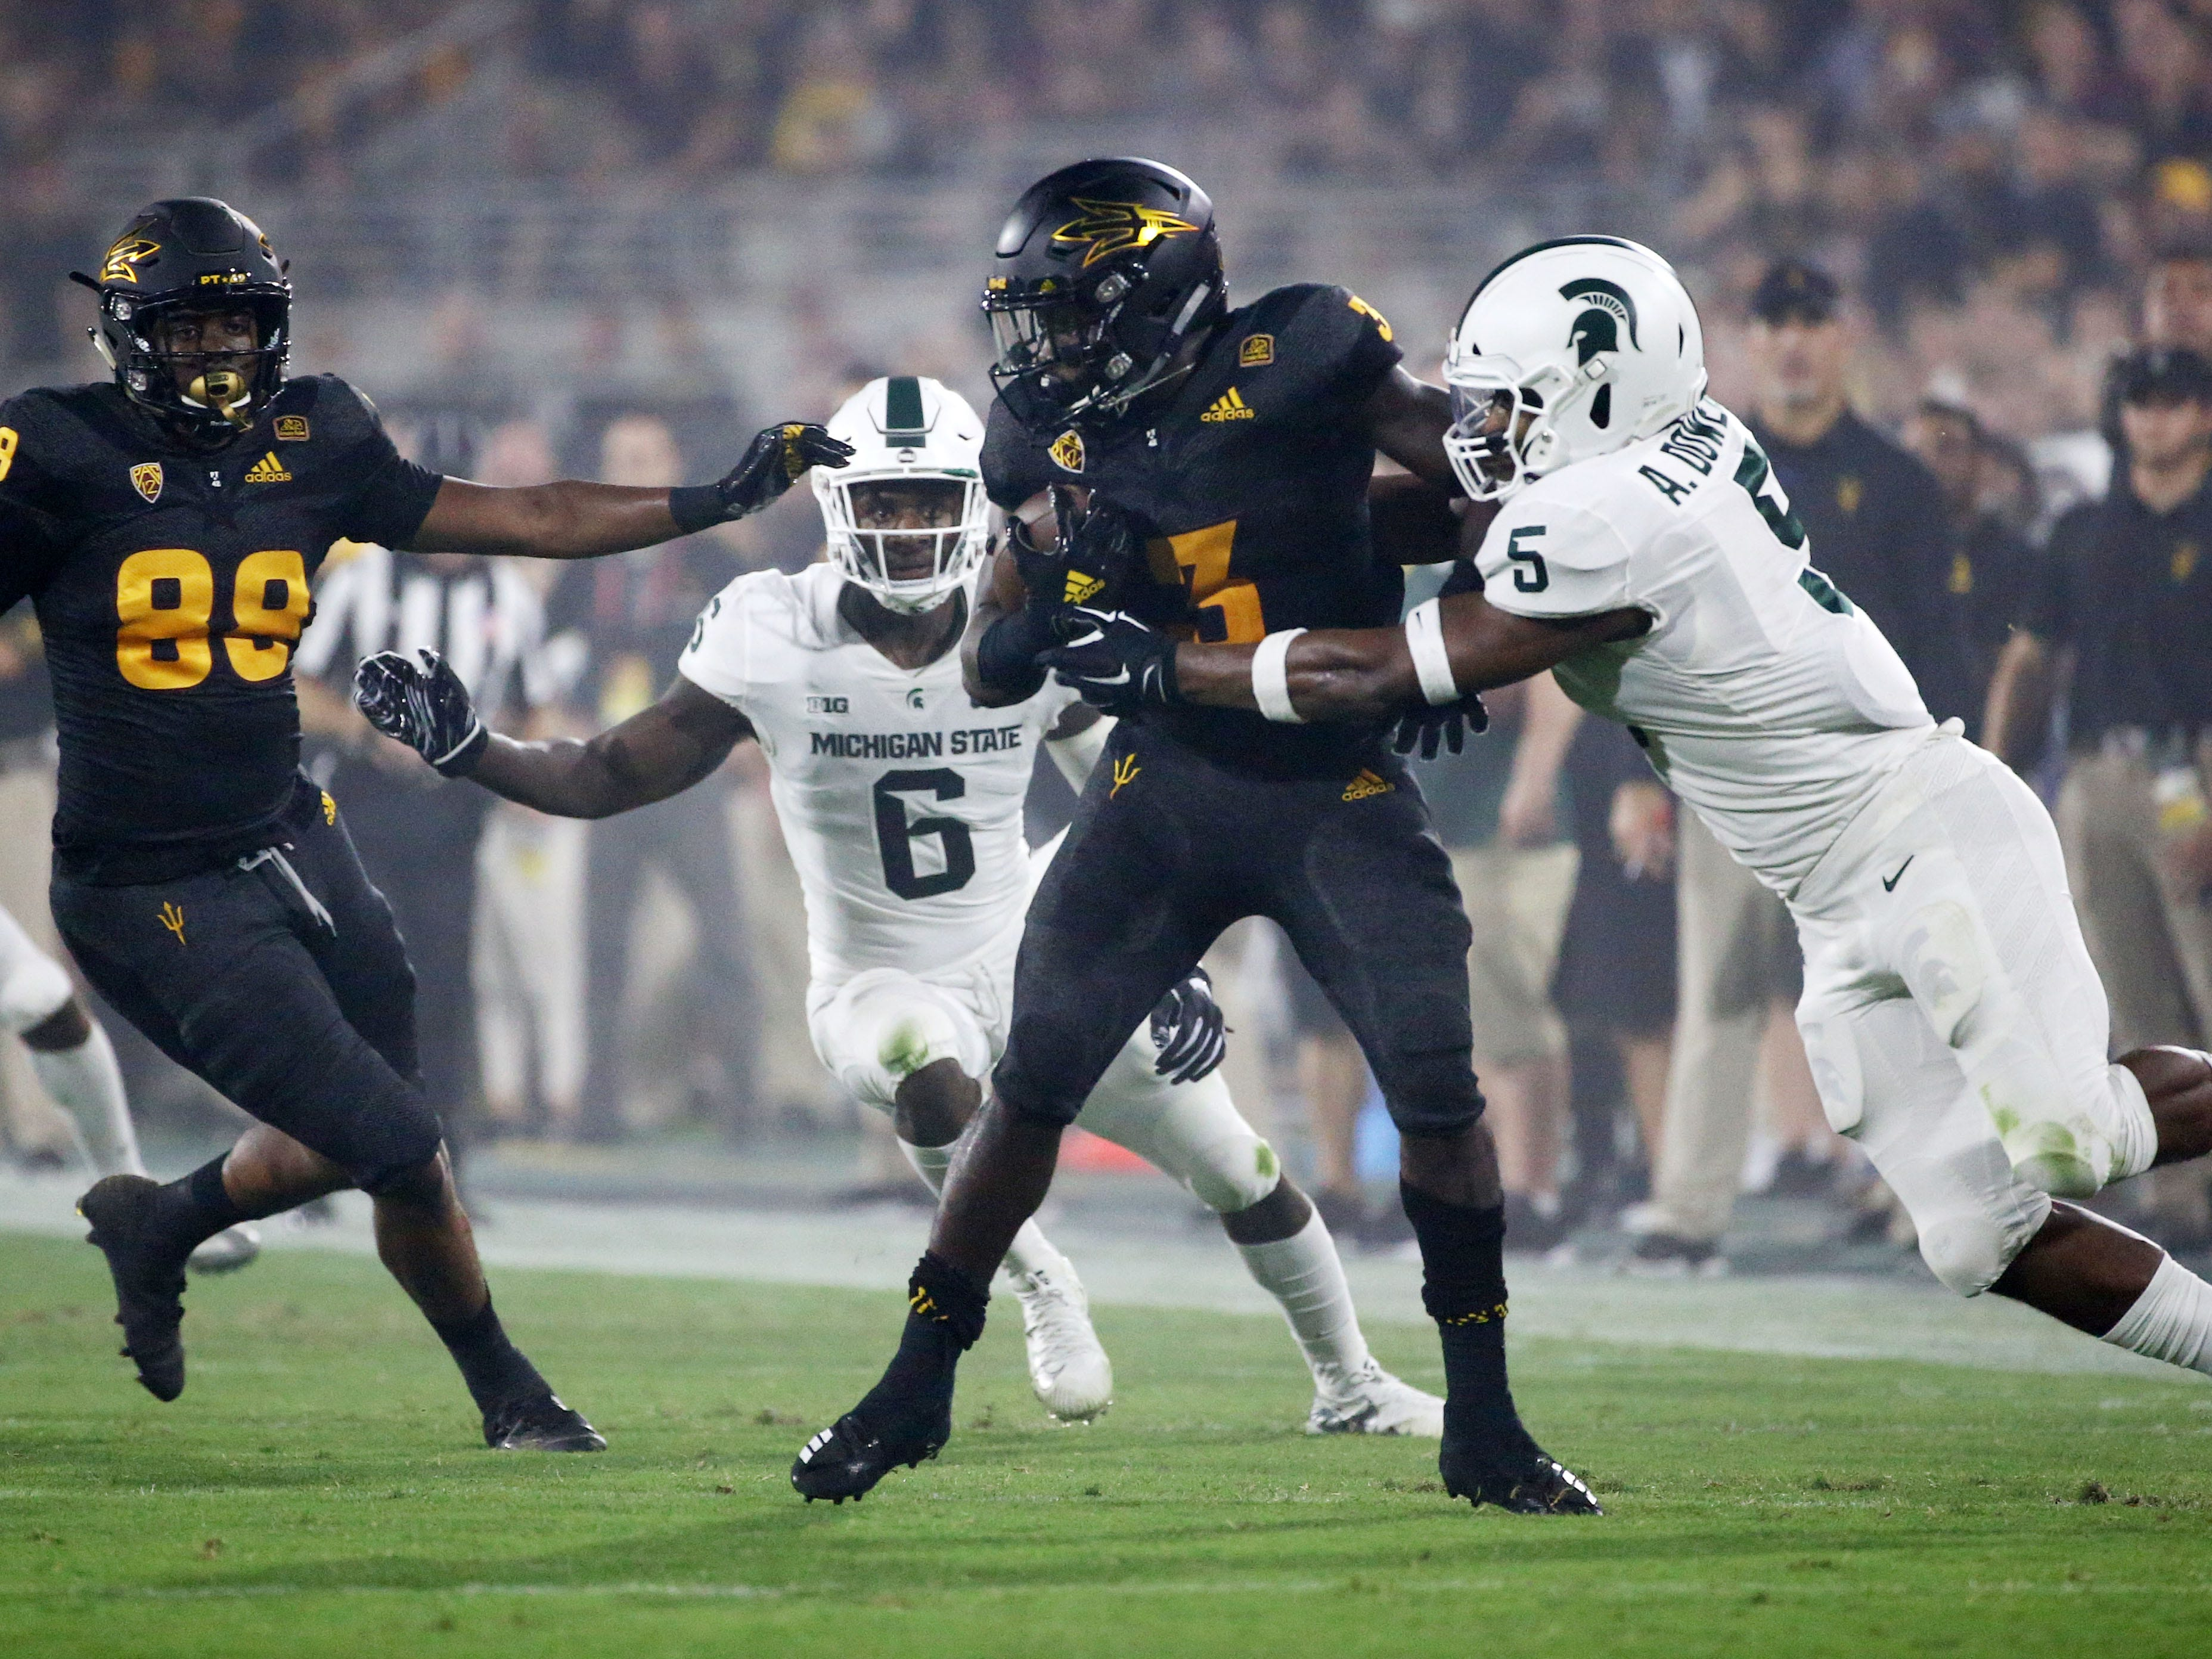 Arizona State running back Eno Benjamin is tackled by Michigan State linebacker Andrew Dowell defense on Sep. 8, 2018, at Sun Devil Stadium.